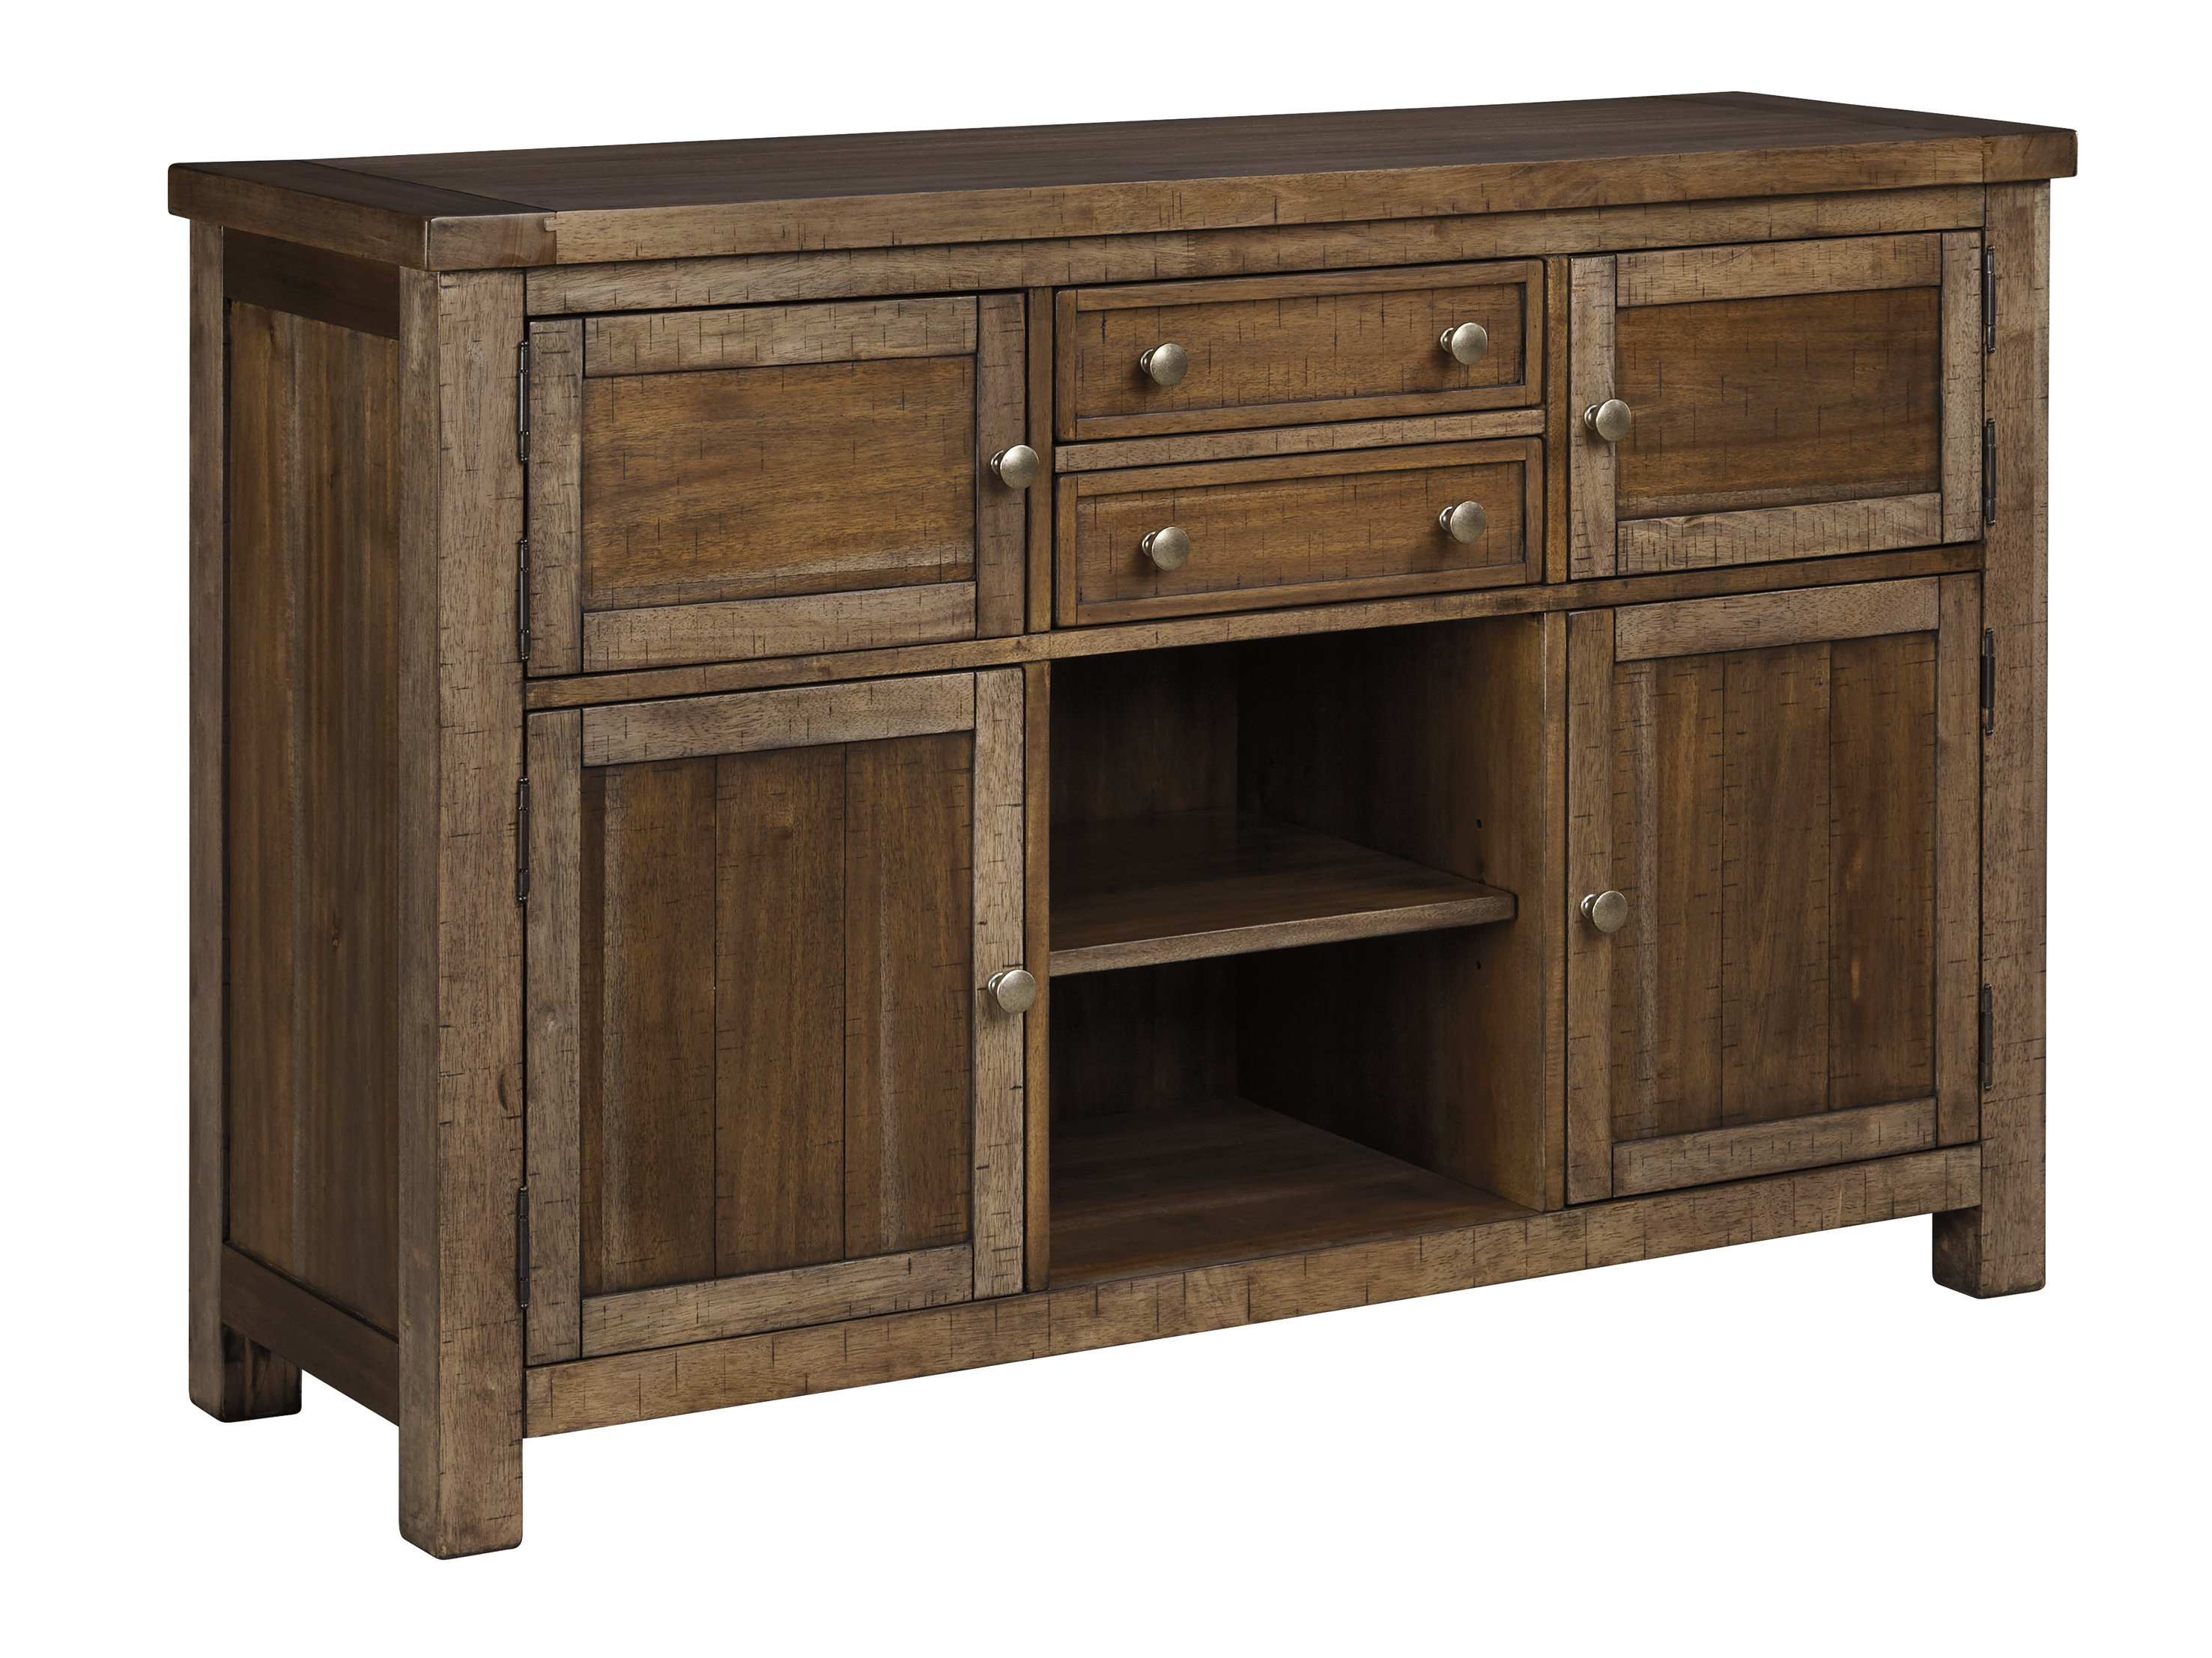 Hillary Dining Room Buffet Table Within Latest Whitten Sideboards (#8 of 20)